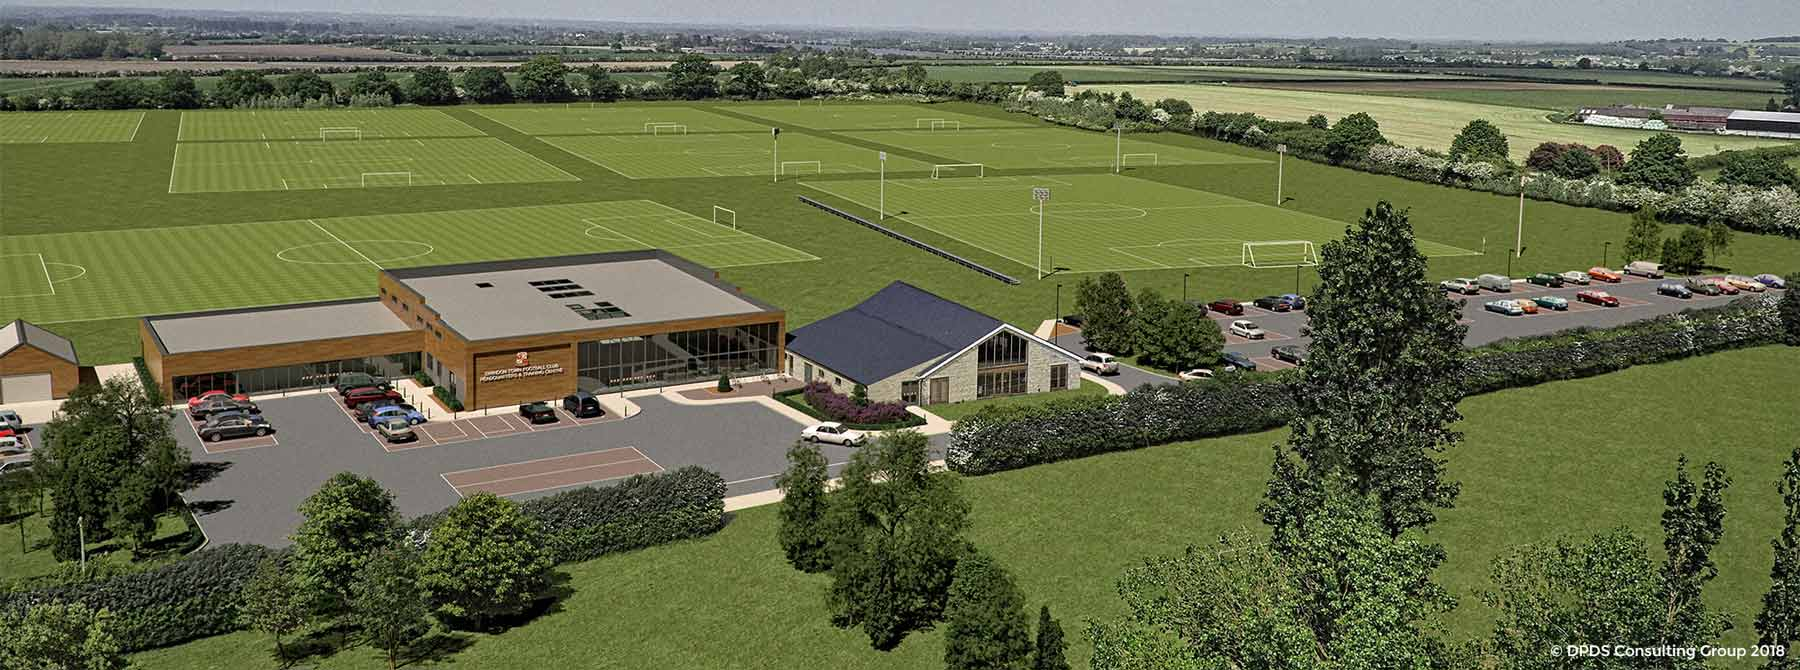 Computer Generated Image of STFC Training Ground at Highworth